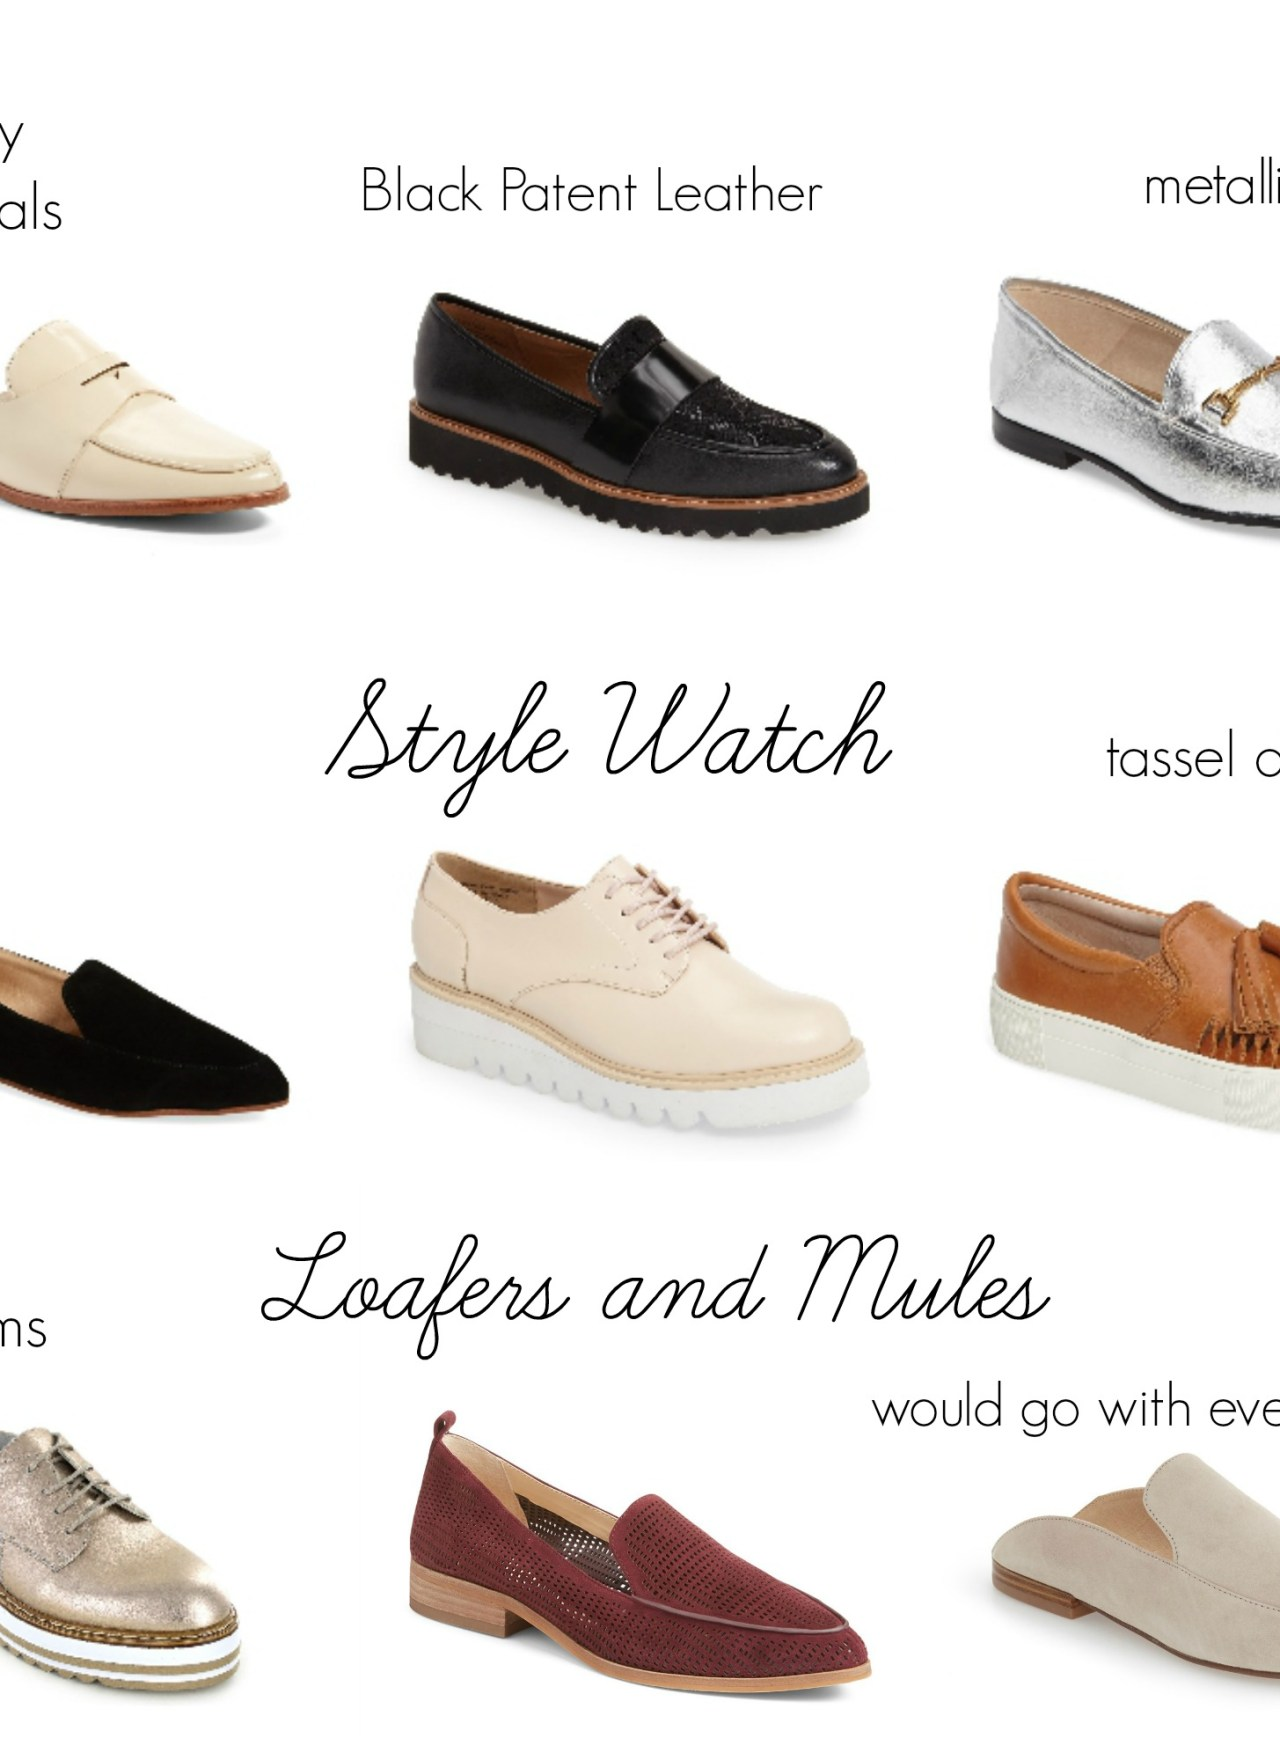 Style Watch: Loafers and Mules